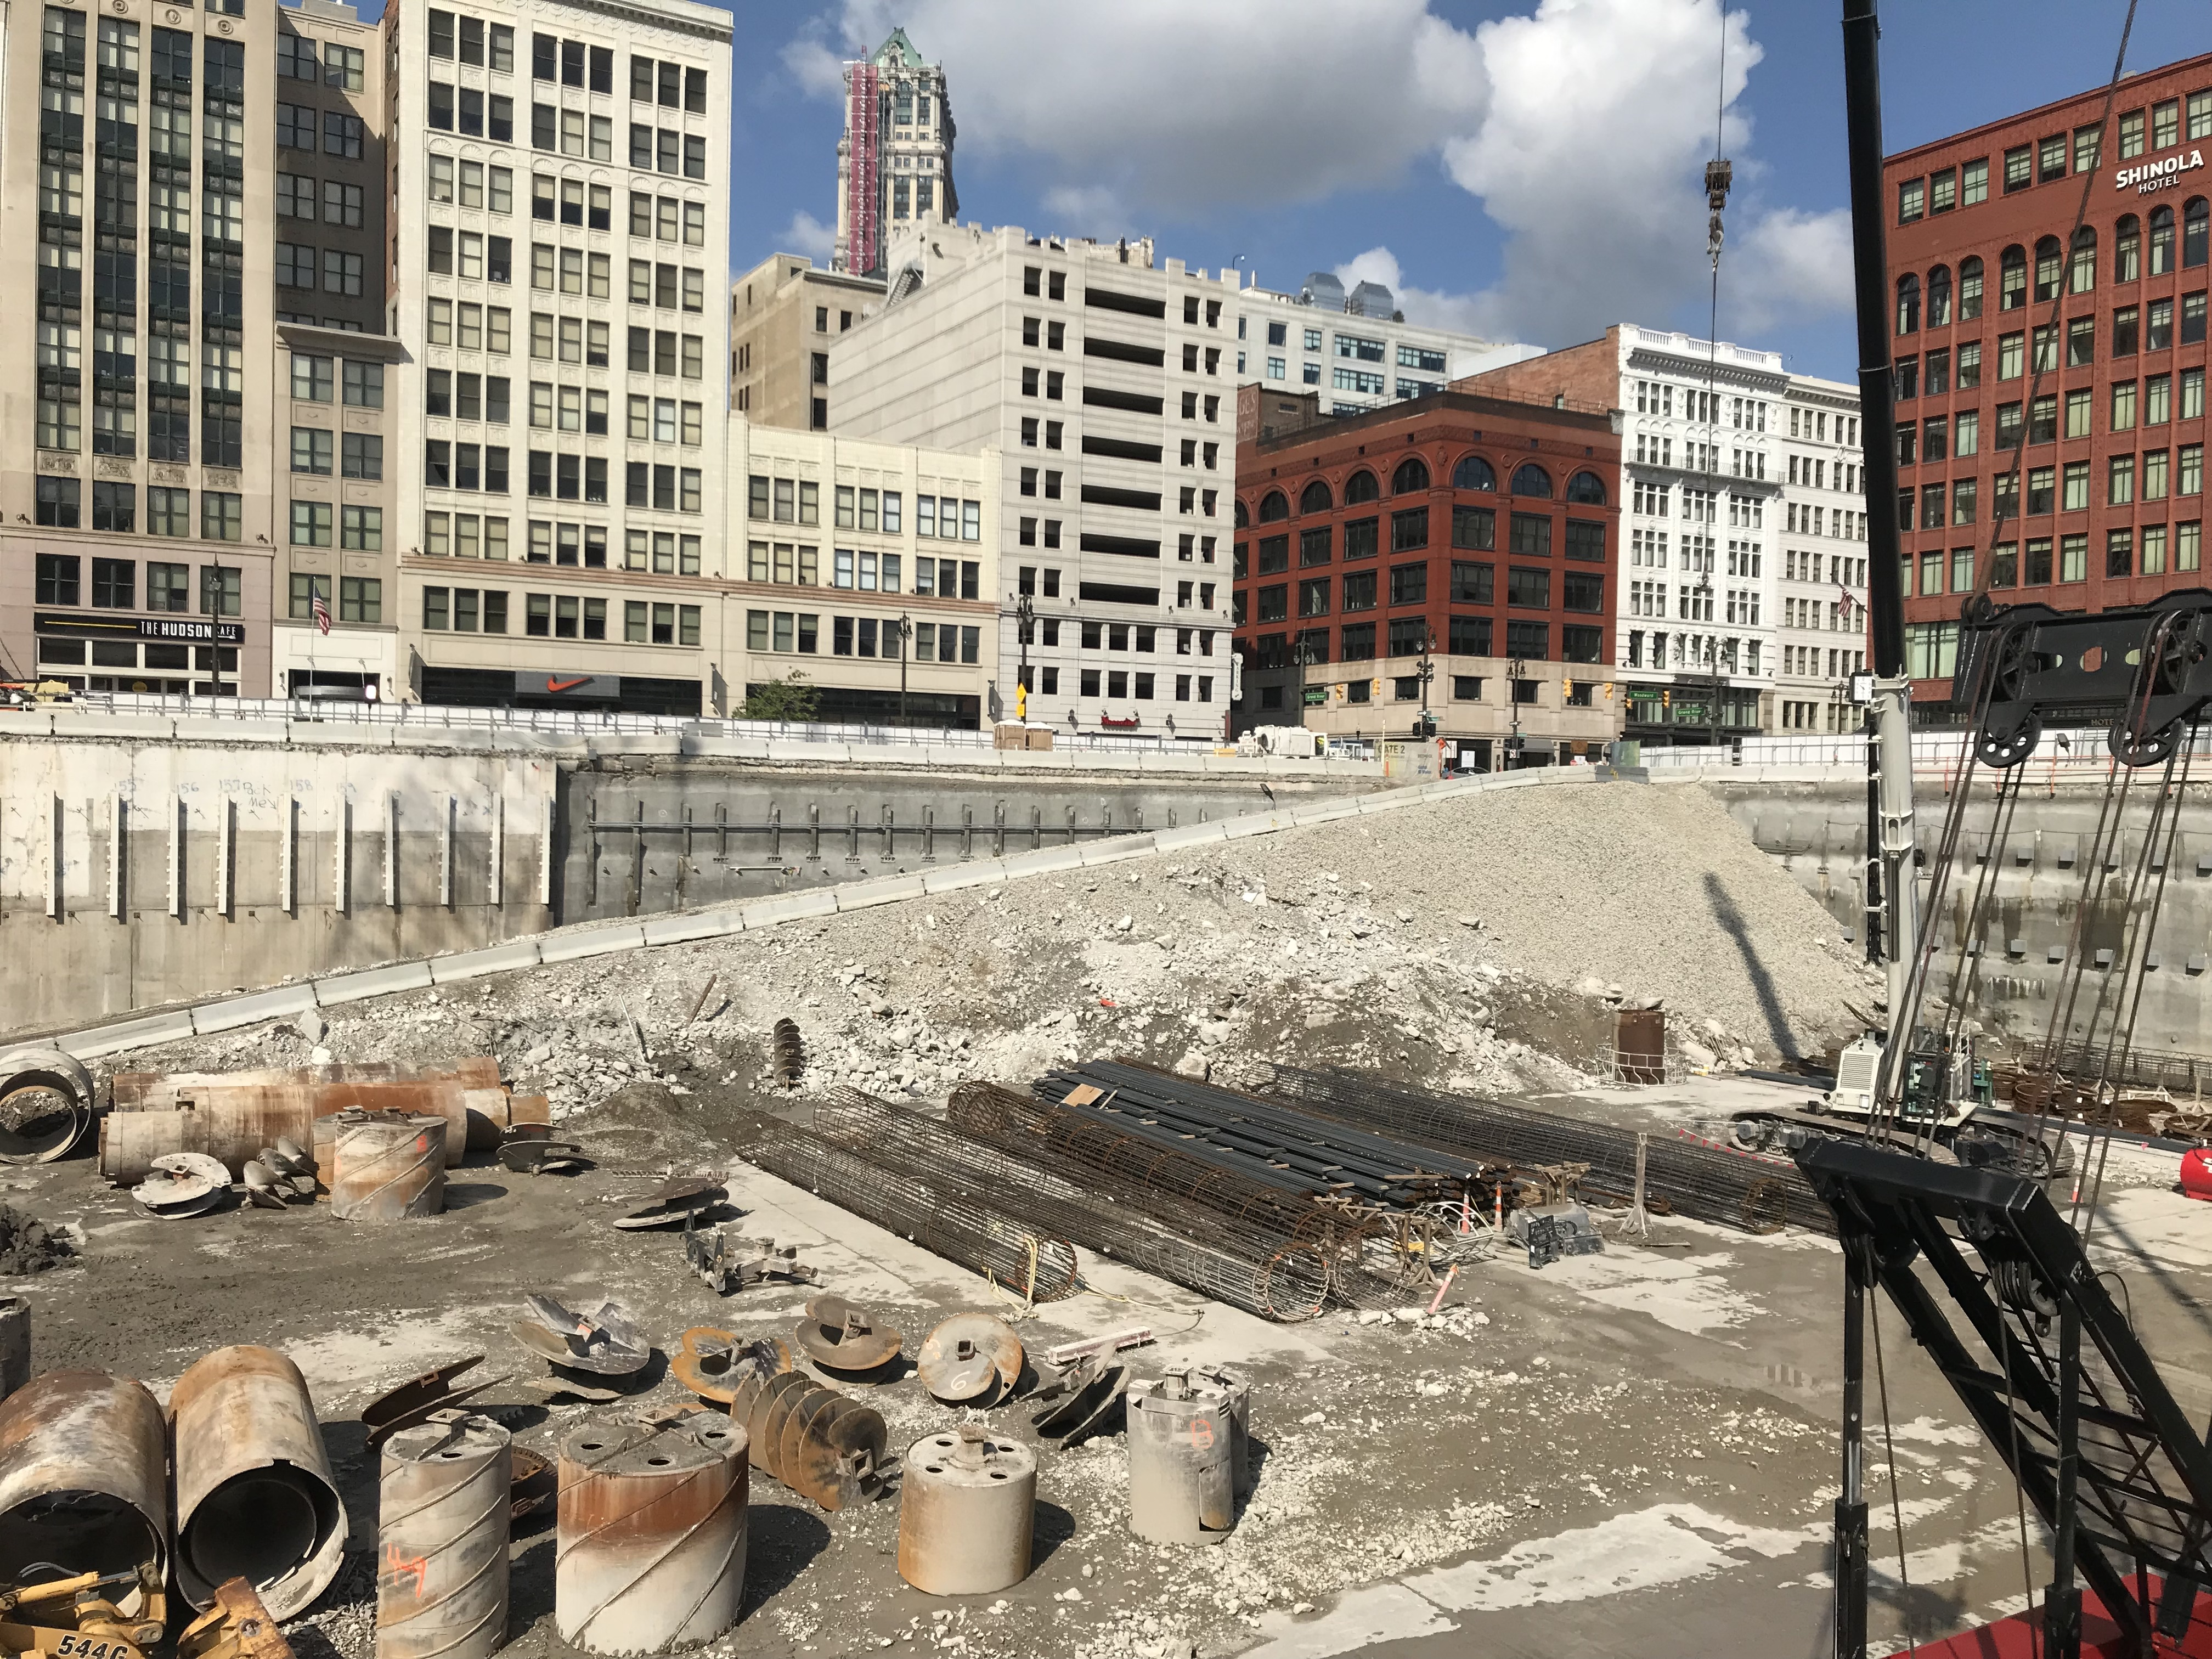 Heavy machinery and equipment in a 40-foot deep excavation site. On the other side of the hole, there's a row of 5- to 10-story buildings.